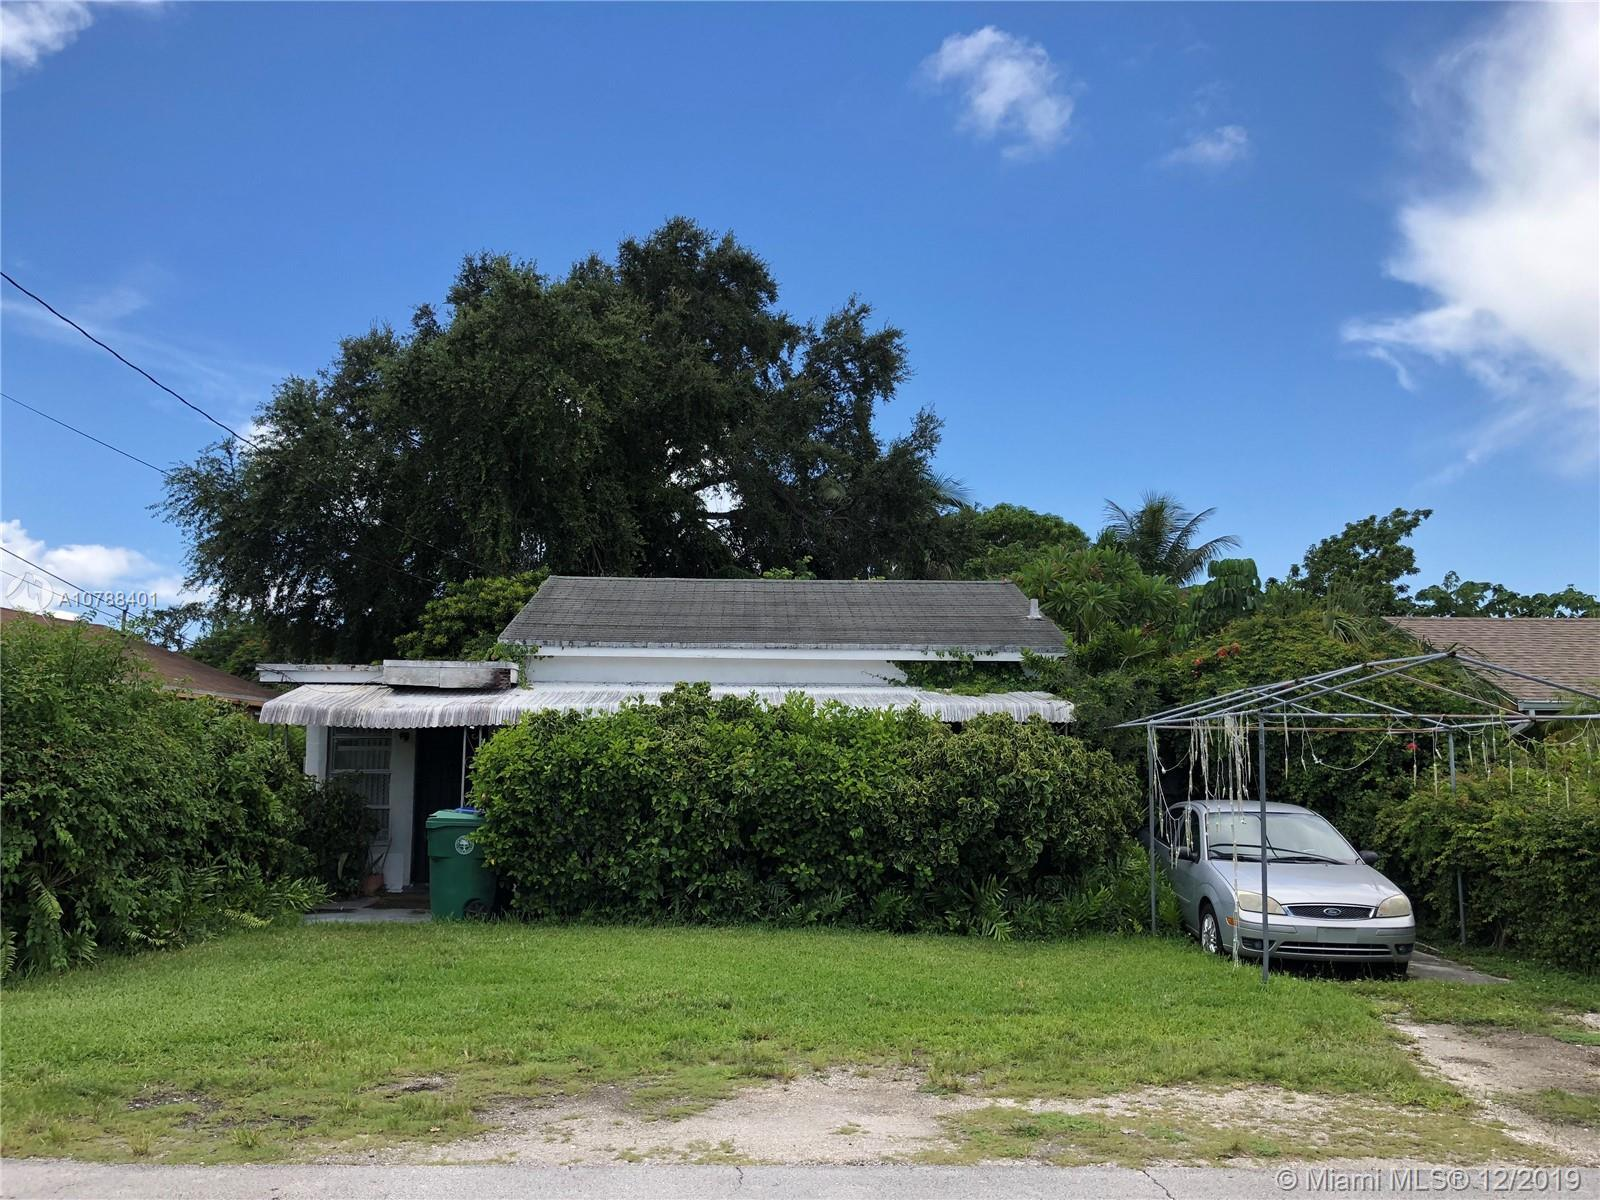 Probate Sale! Opportunity to buy in the heart of Coconut Grove that is experiencing a resurgence. St